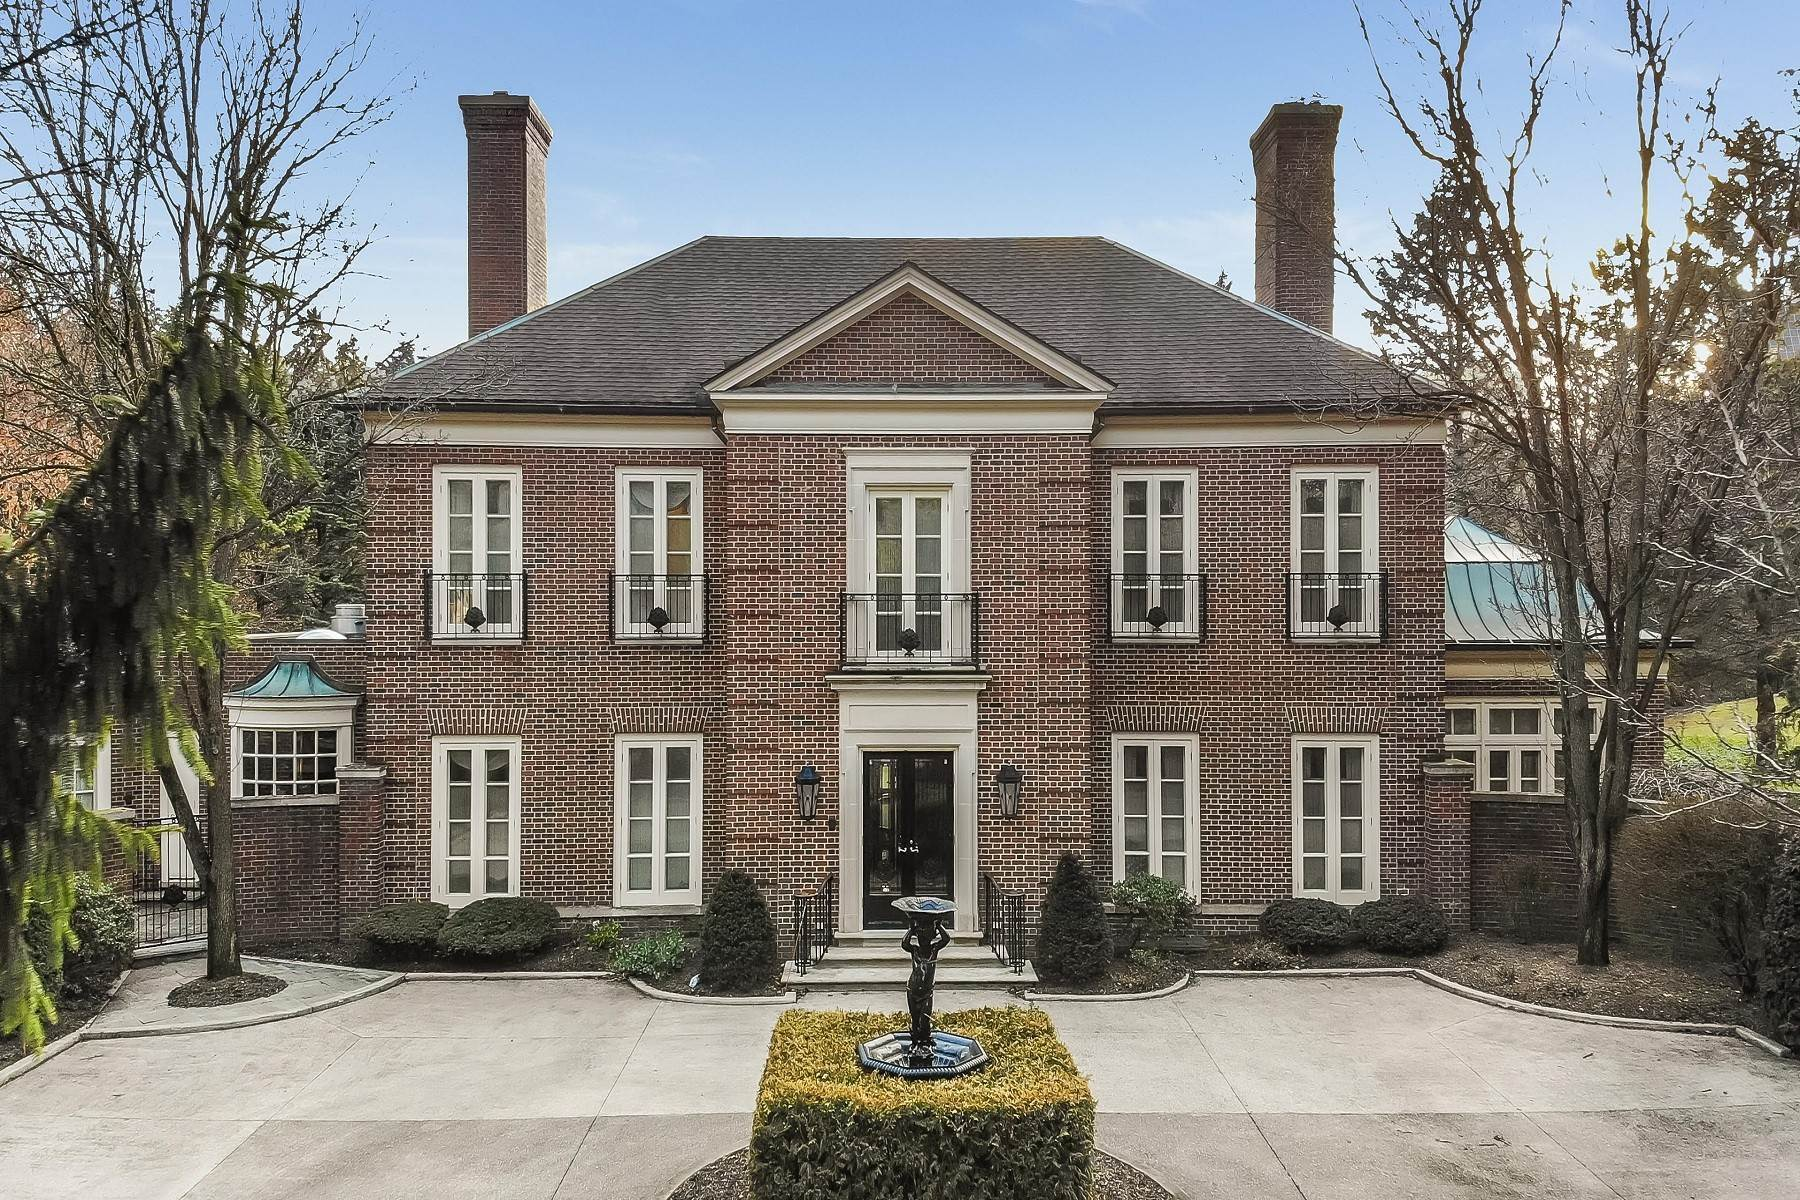 Single Family Homes for Sale at Bloomfield Hills 325 Dunston Road Bloomfield Hills, Michigan 48304 United States